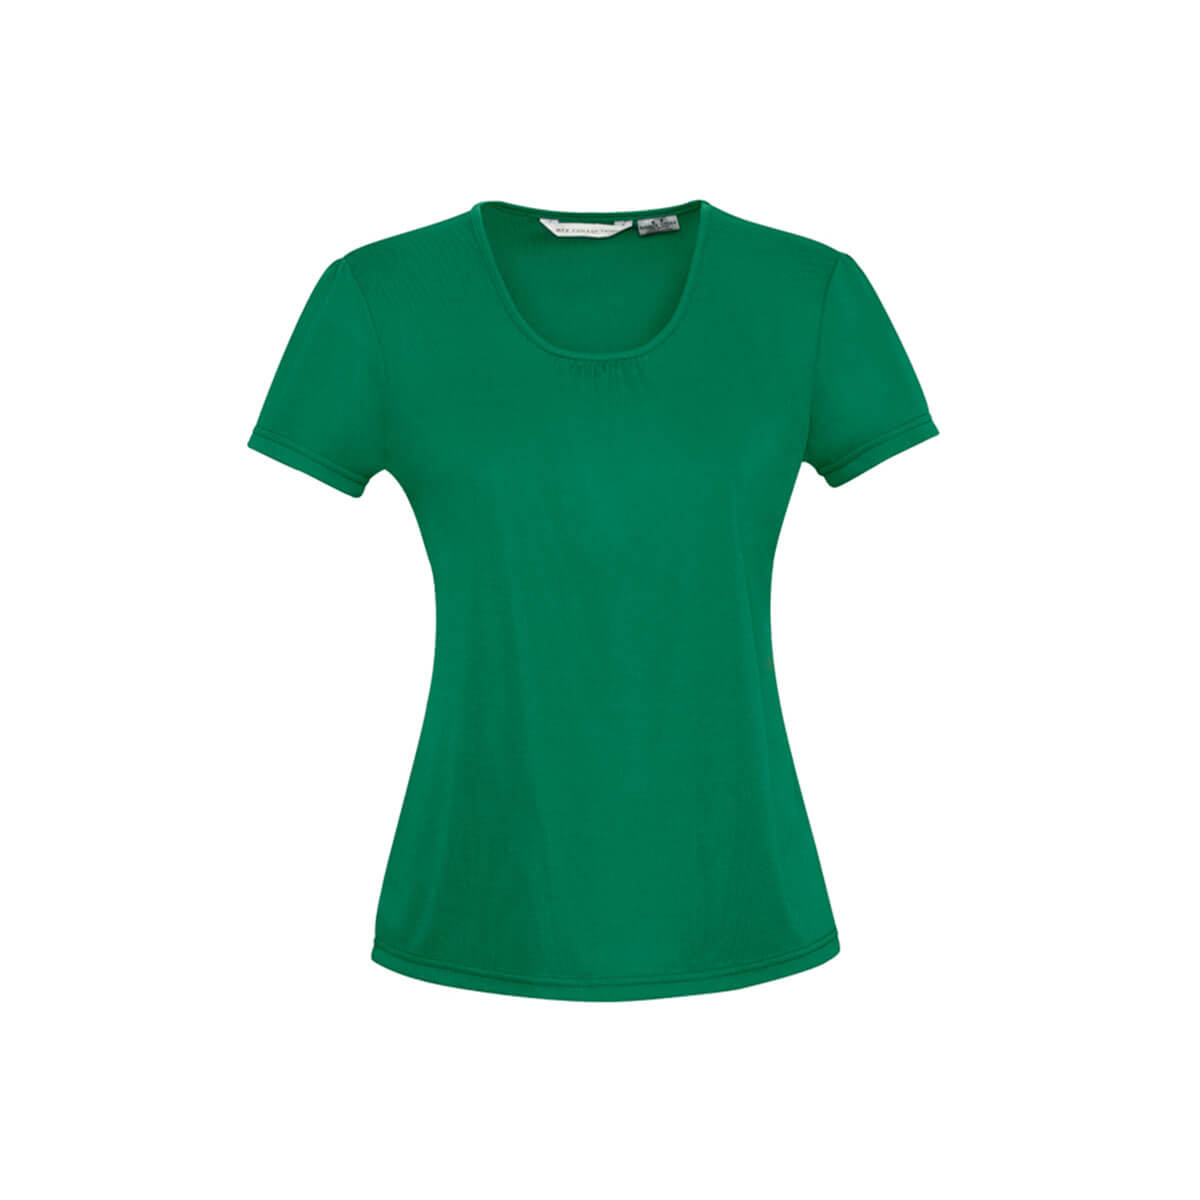 Ladies Chic Top-New Green